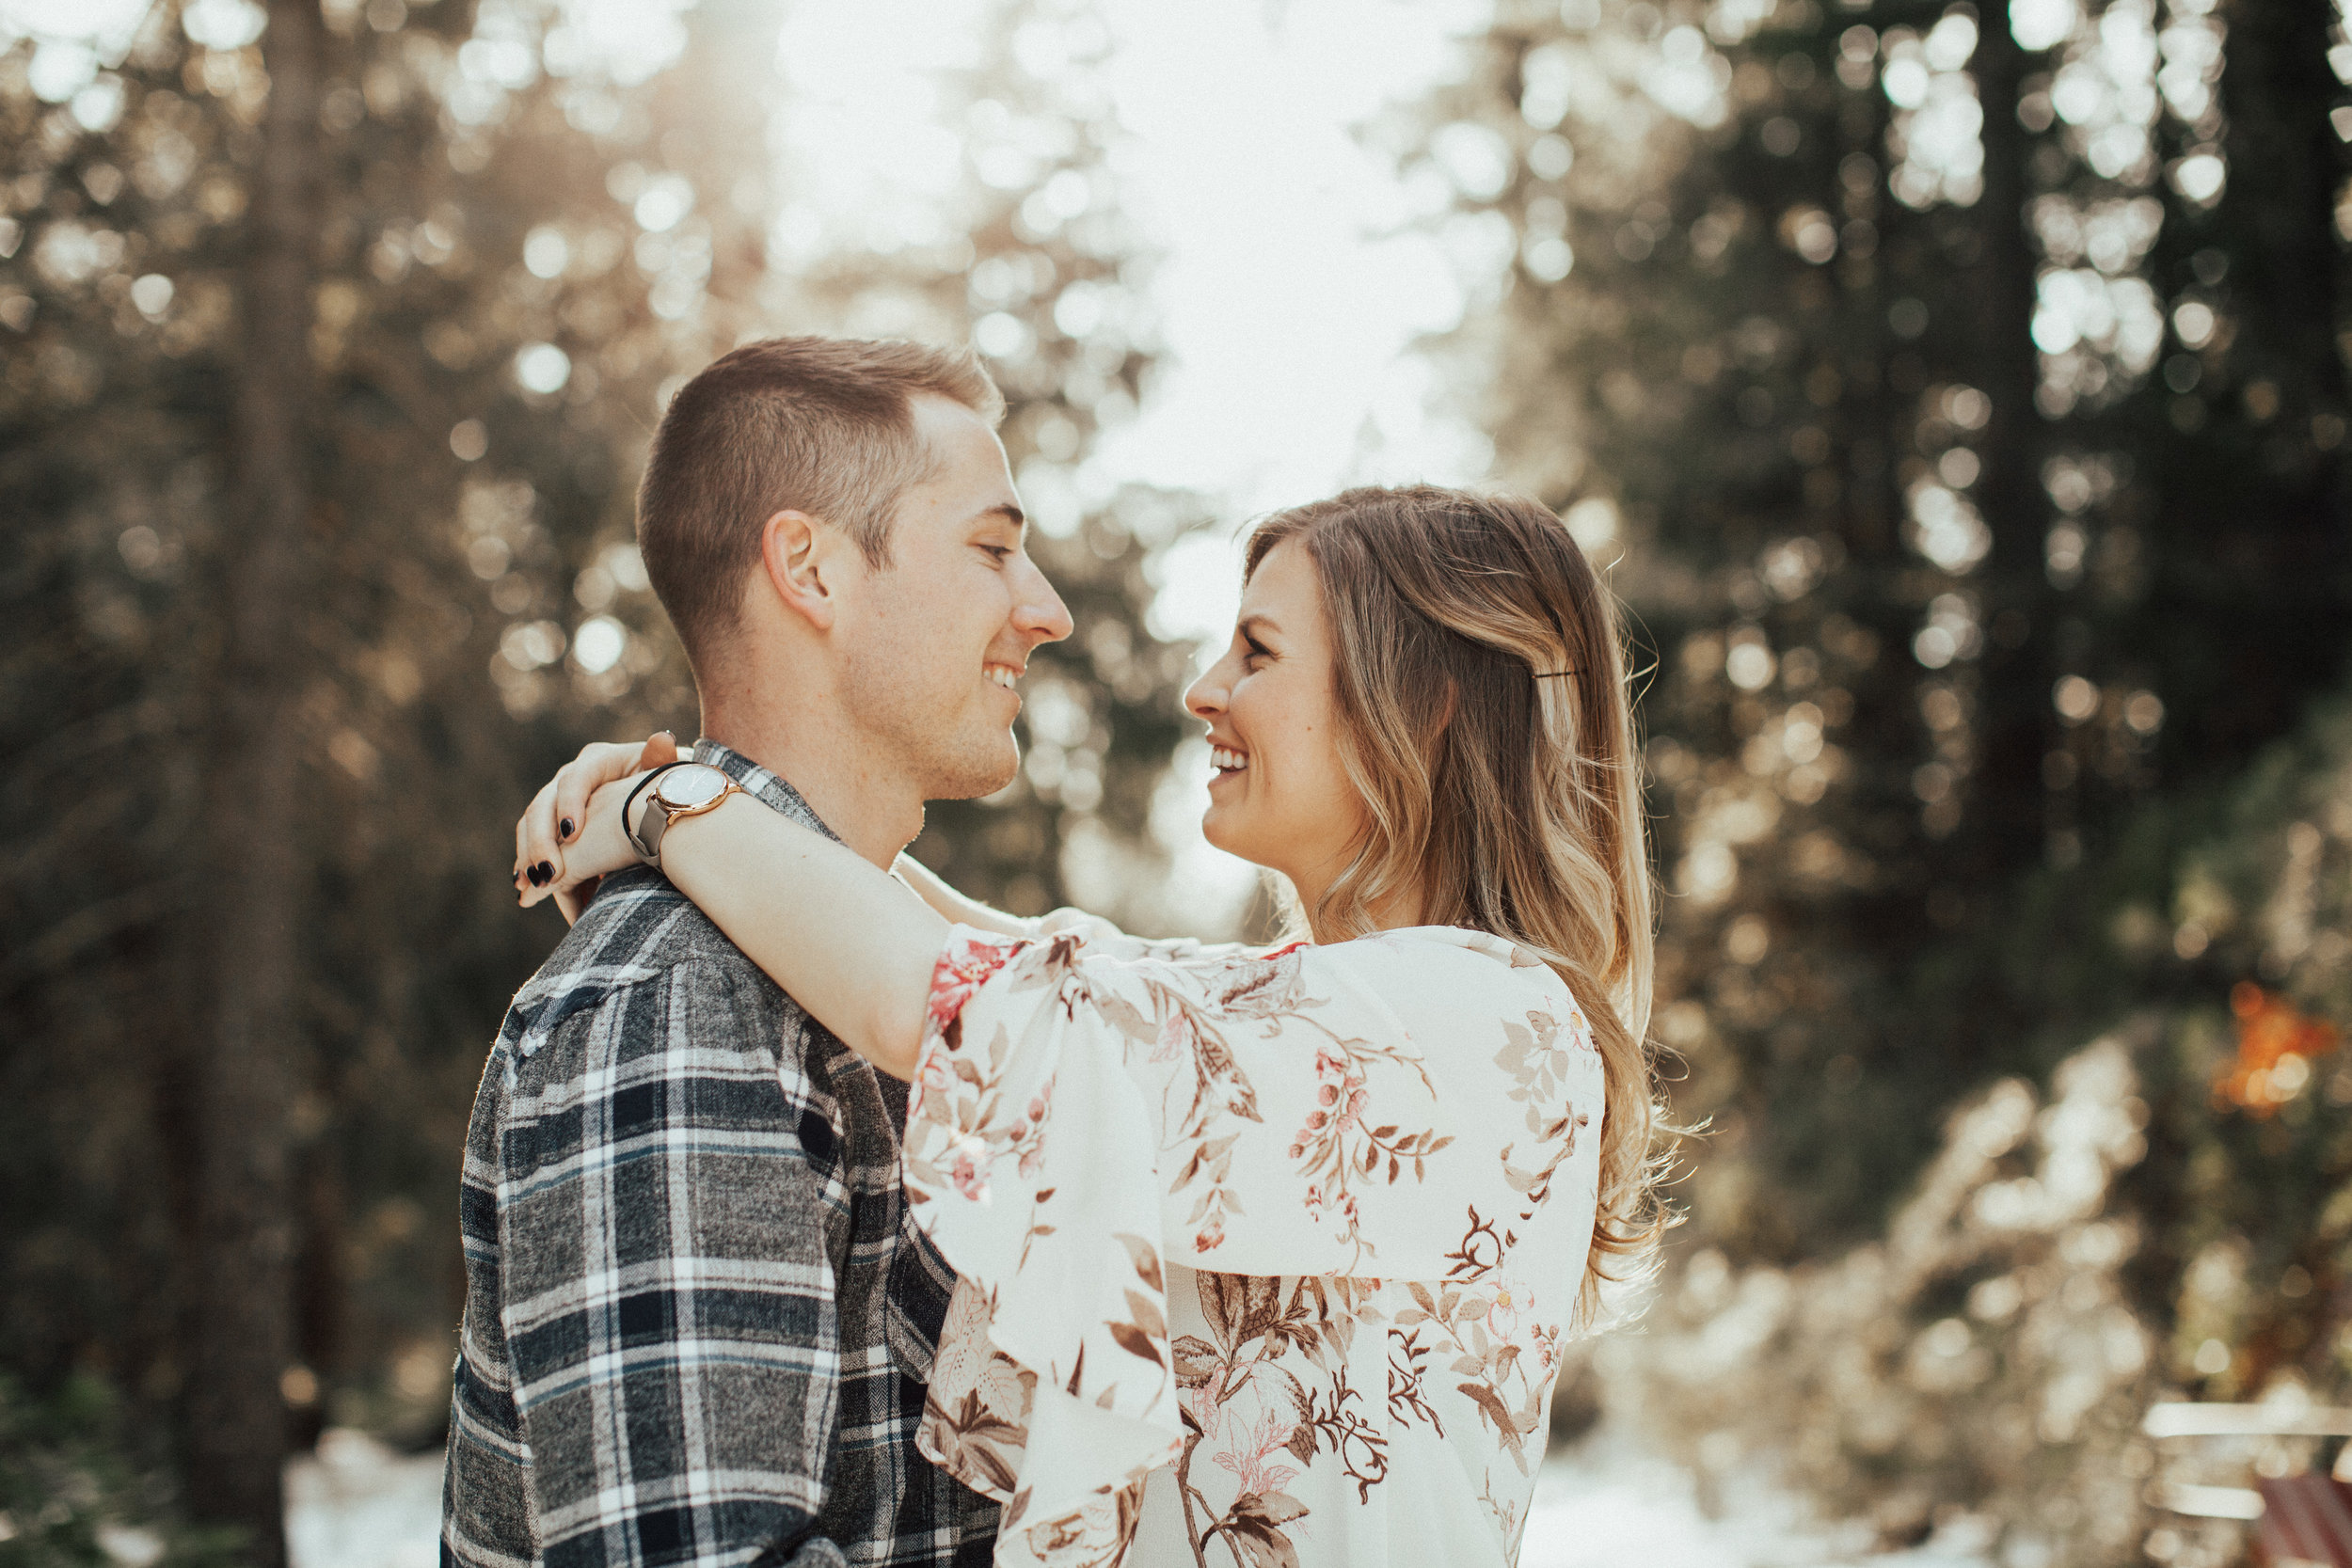 Couple in love about to kiss in front of the snowy nevada city roads.